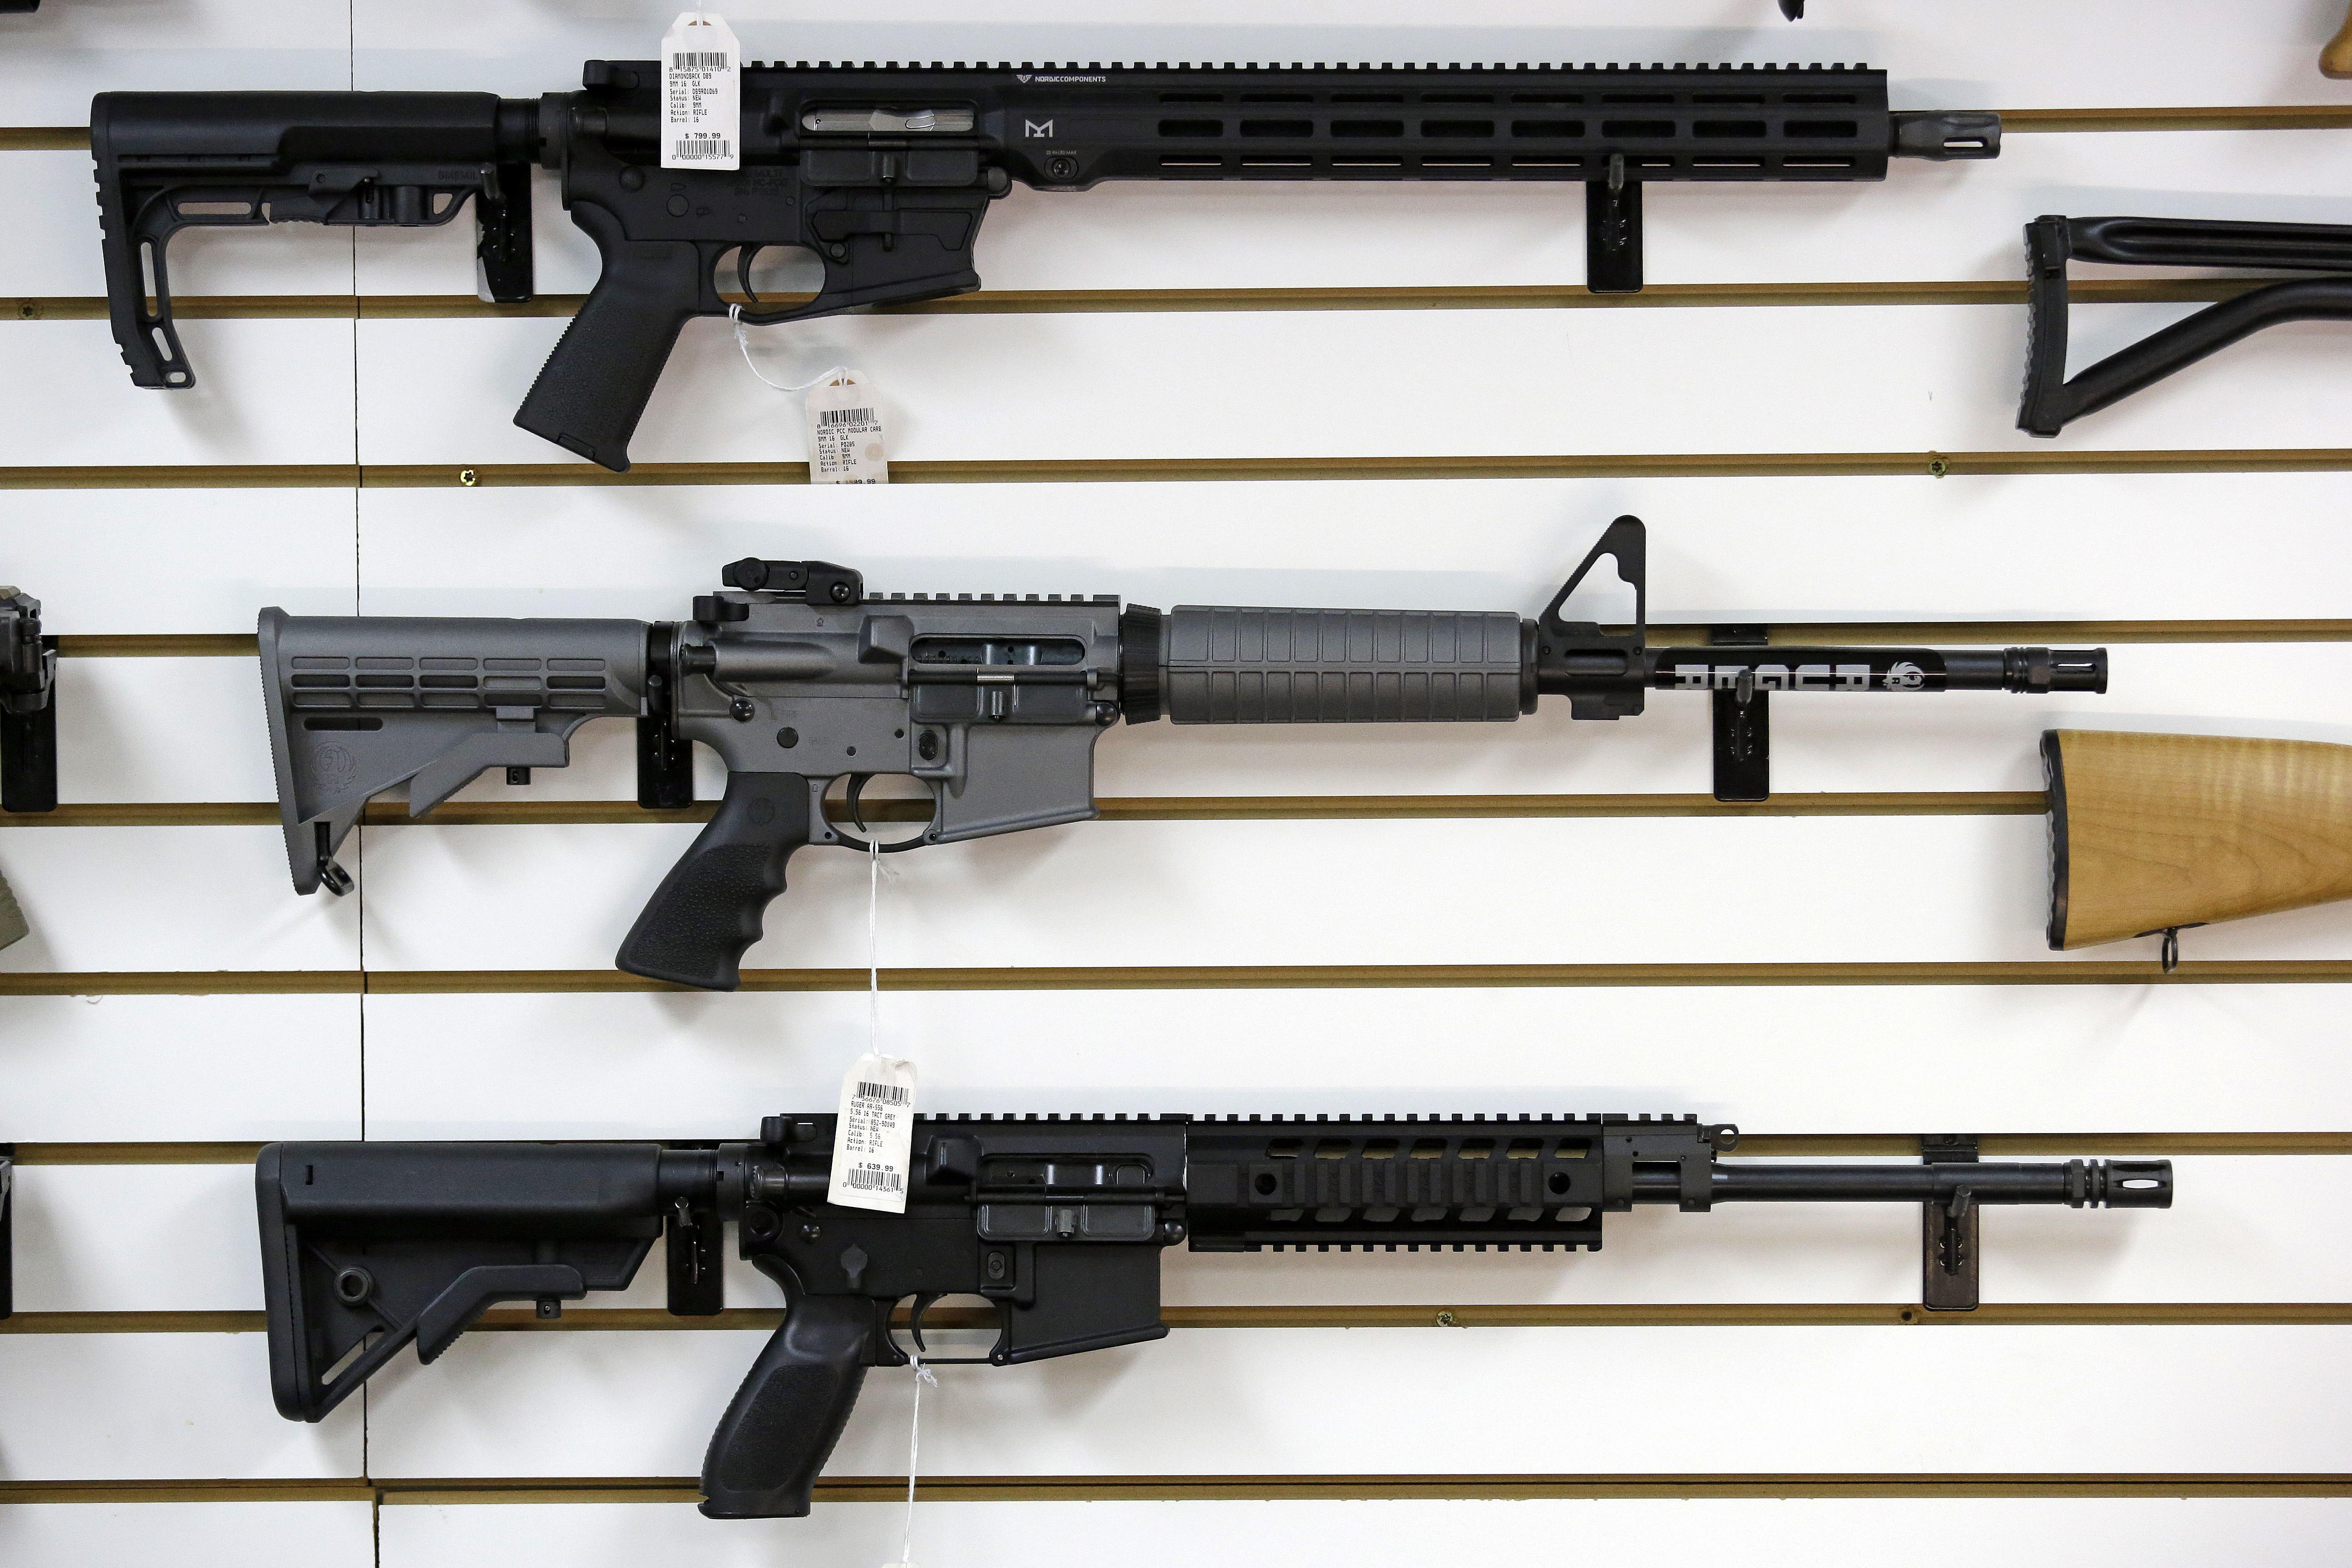 Marketing tactics for AR rifles under new scrutiny after mass shootings